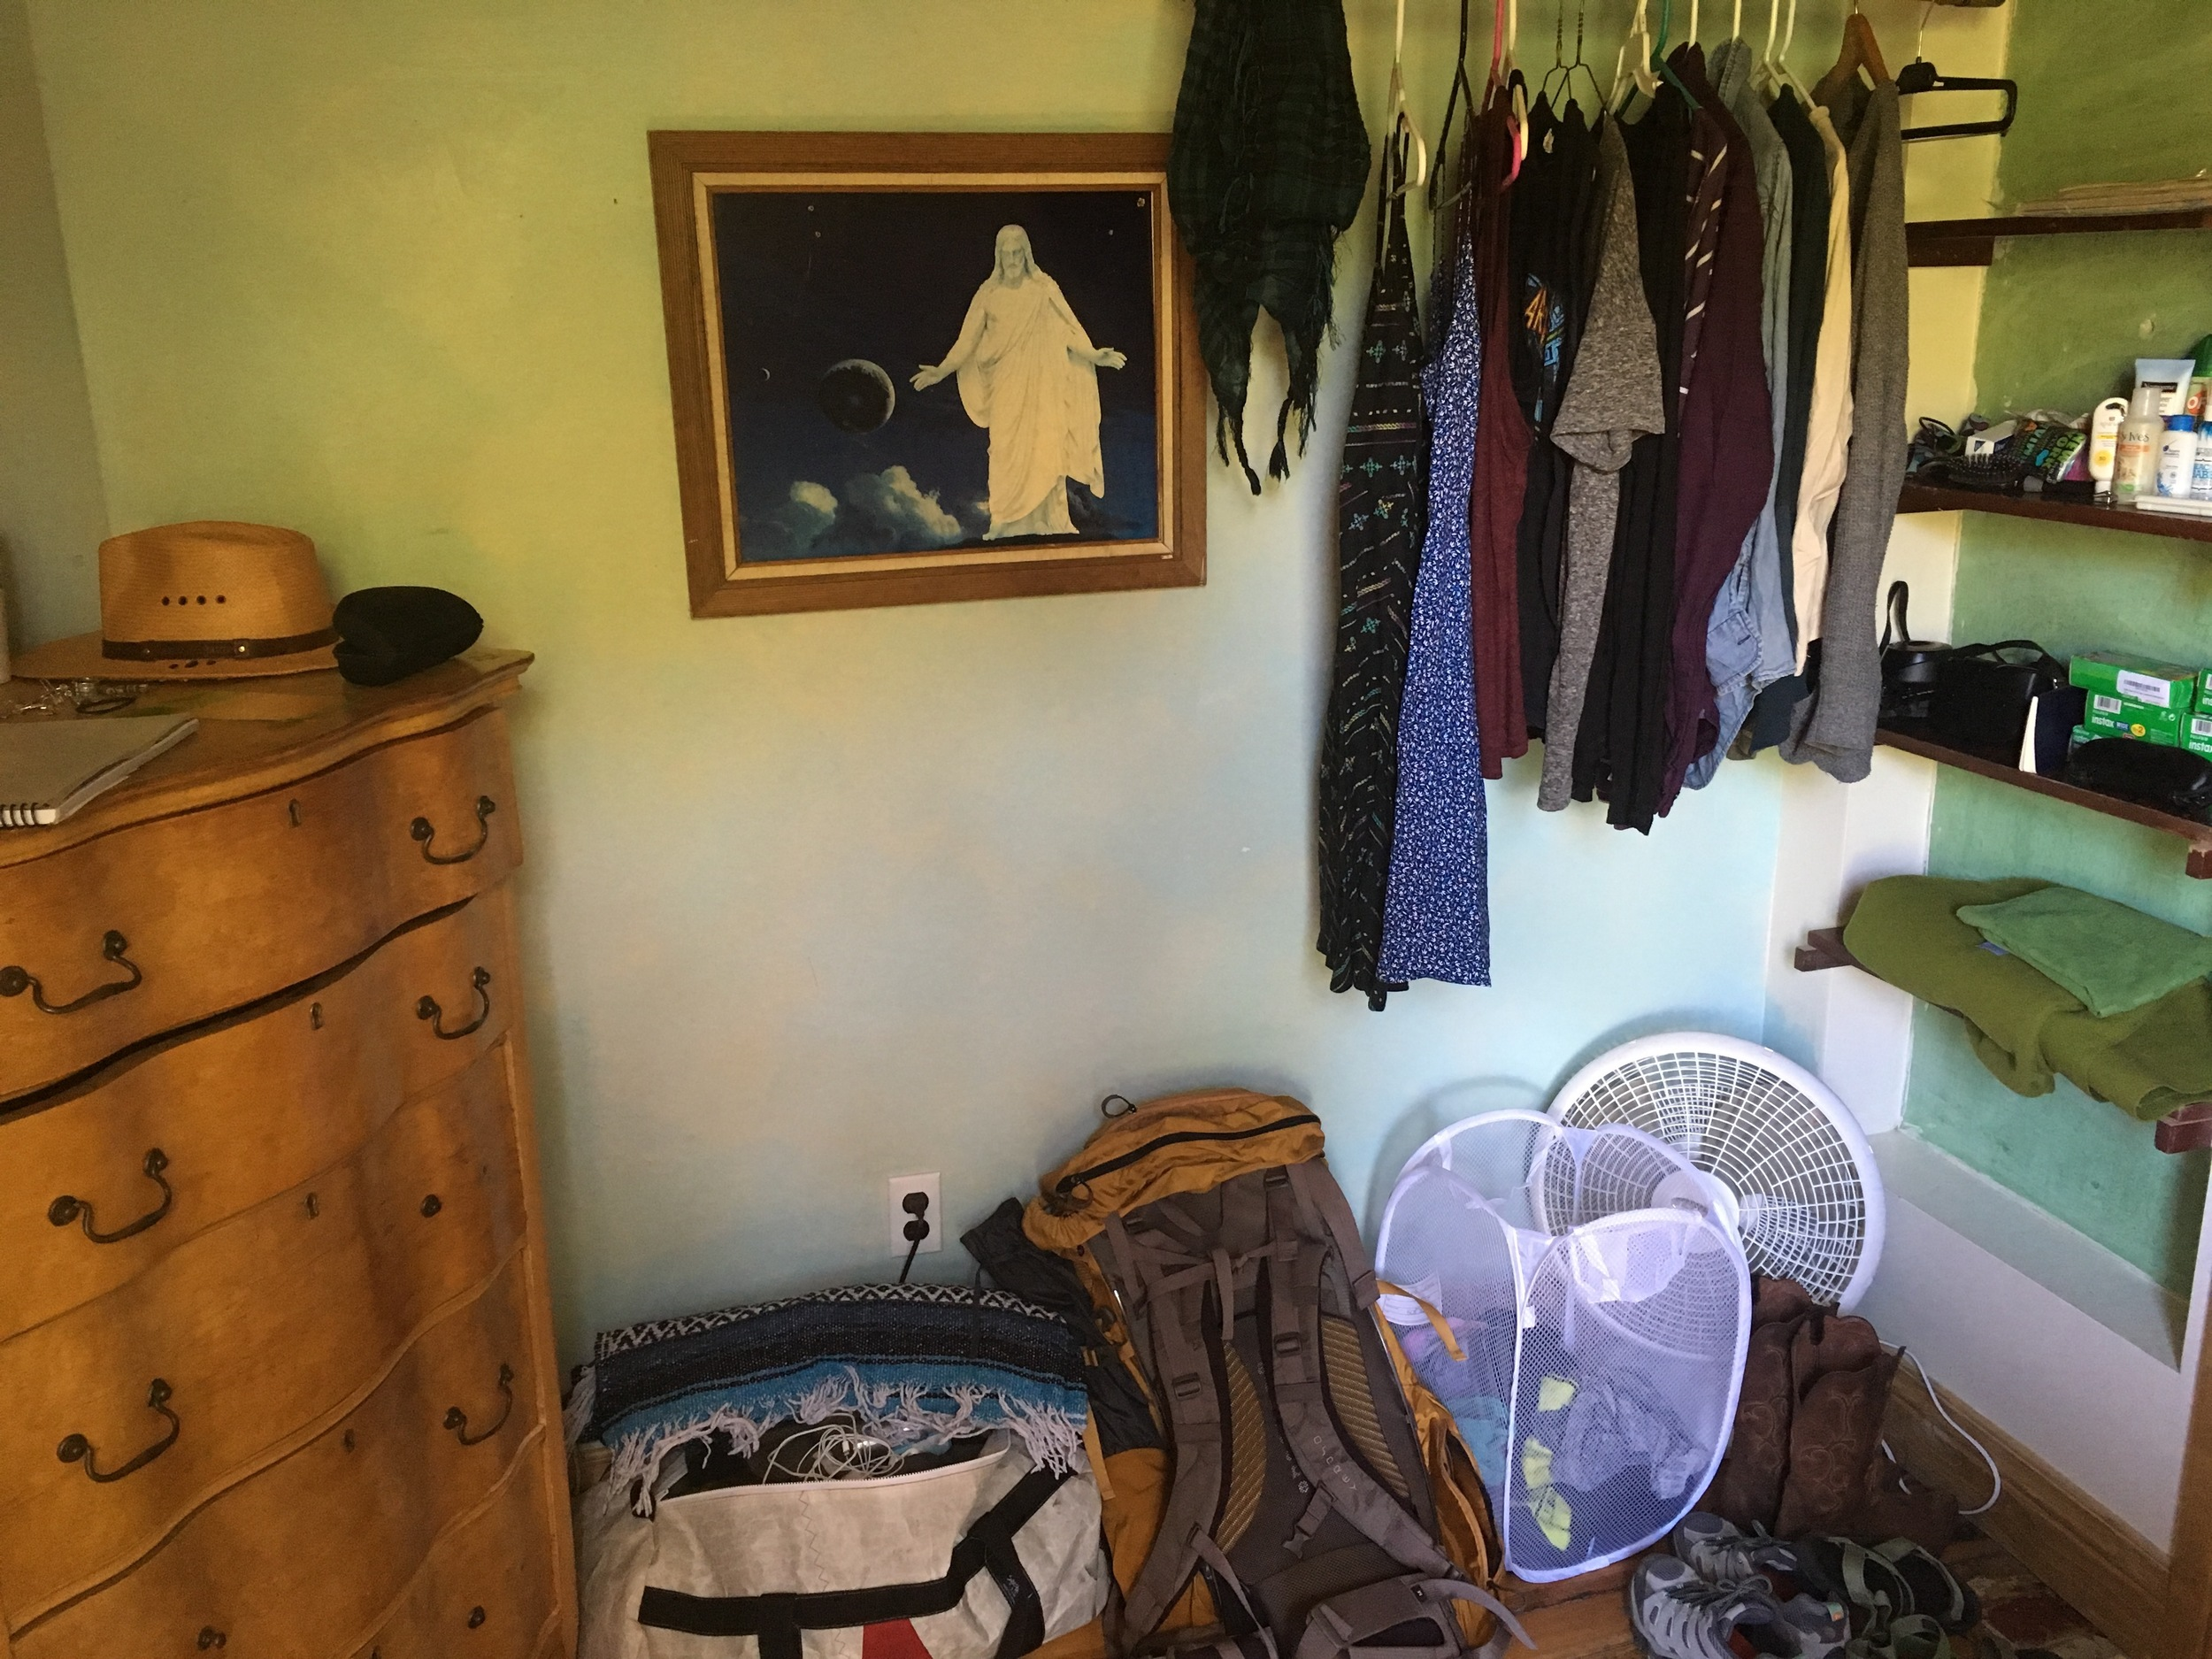 Under my loft bed: dresser and clothes rack (and picture of Jesus in space?)